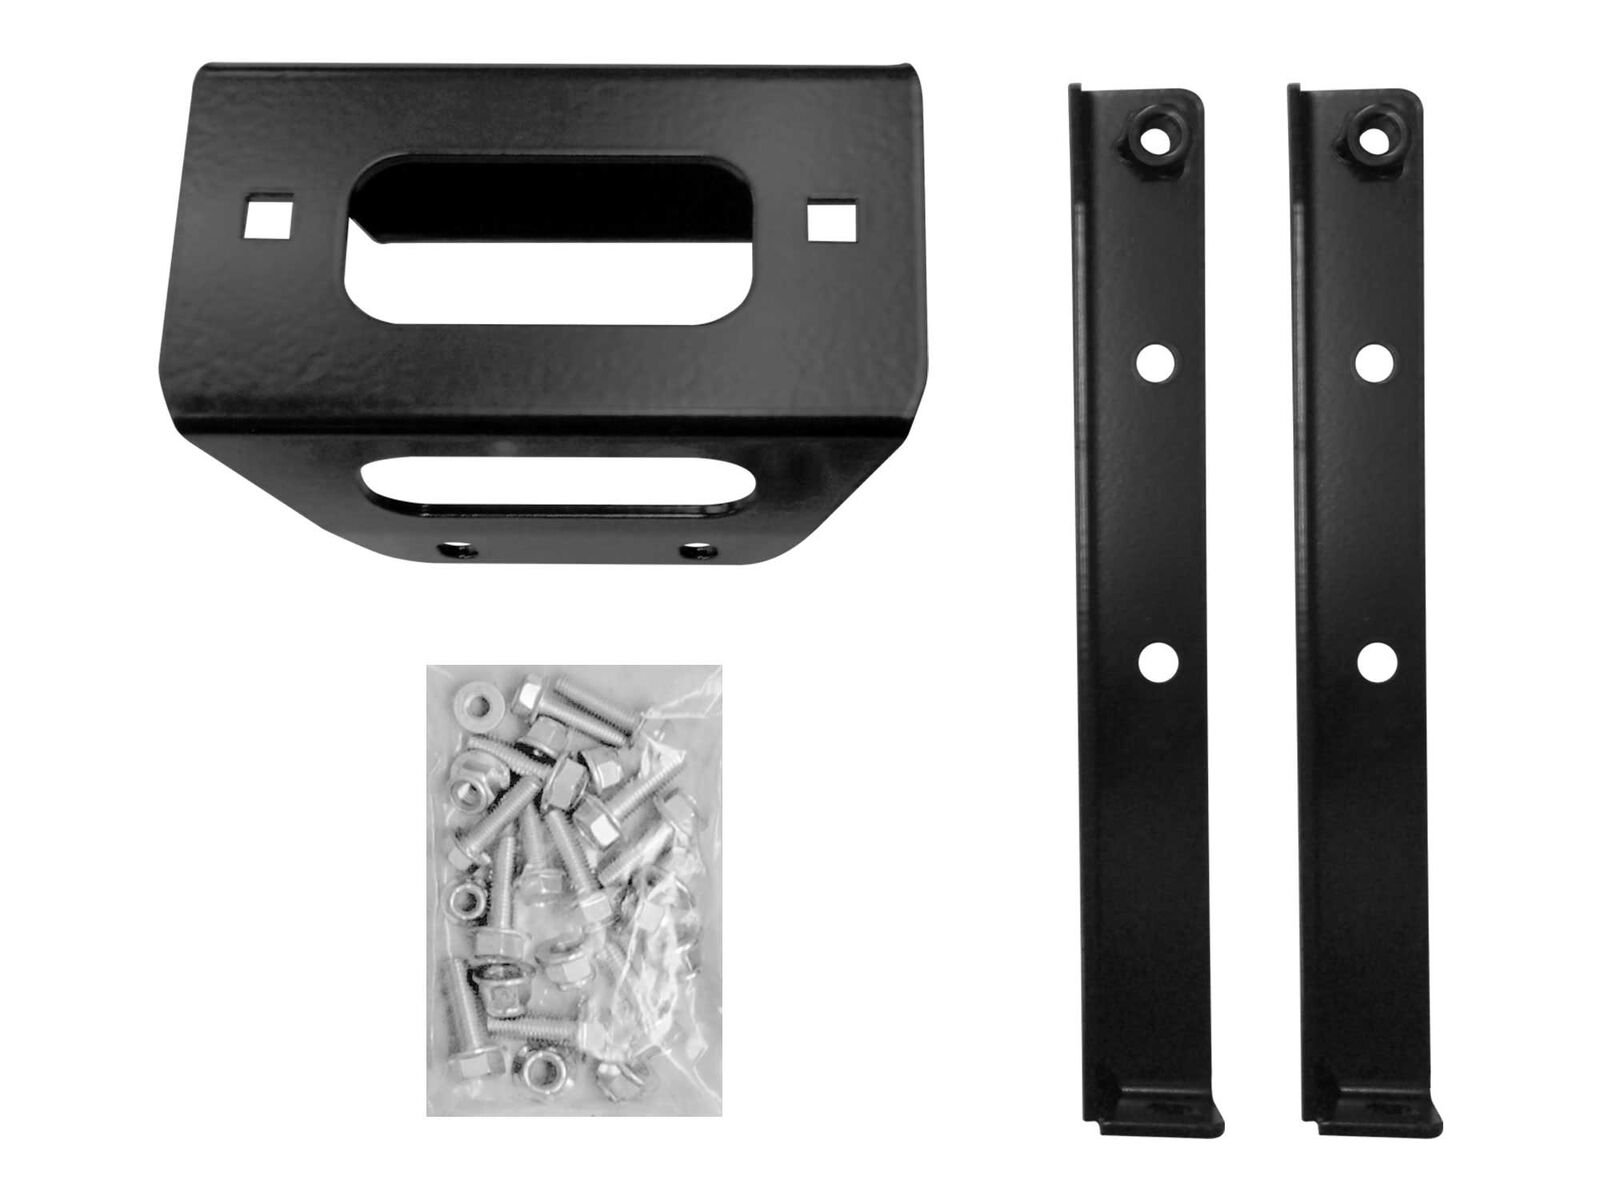 SuperATV Heavy Duty Winch Mounting Plate for Polaris RZR 800/800 S / 4 800 (2008+) - For 4500 & 5000 lb. Winches